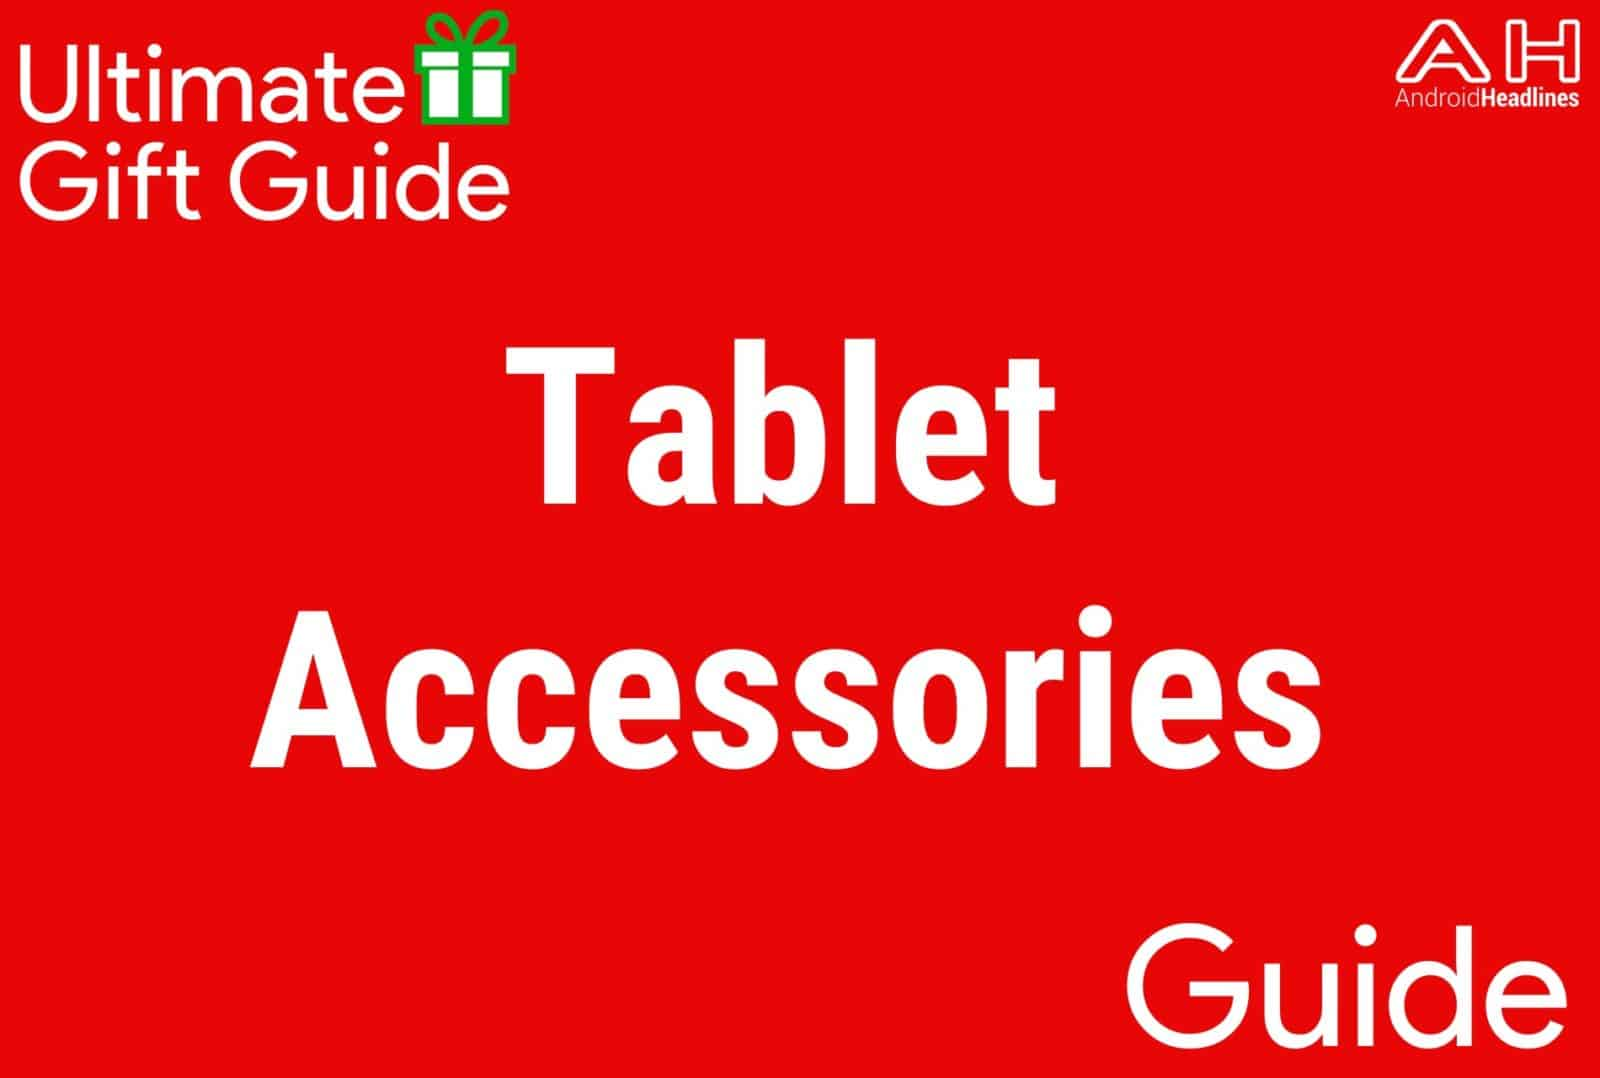 Tablet Accessories - Gift Guide 2015